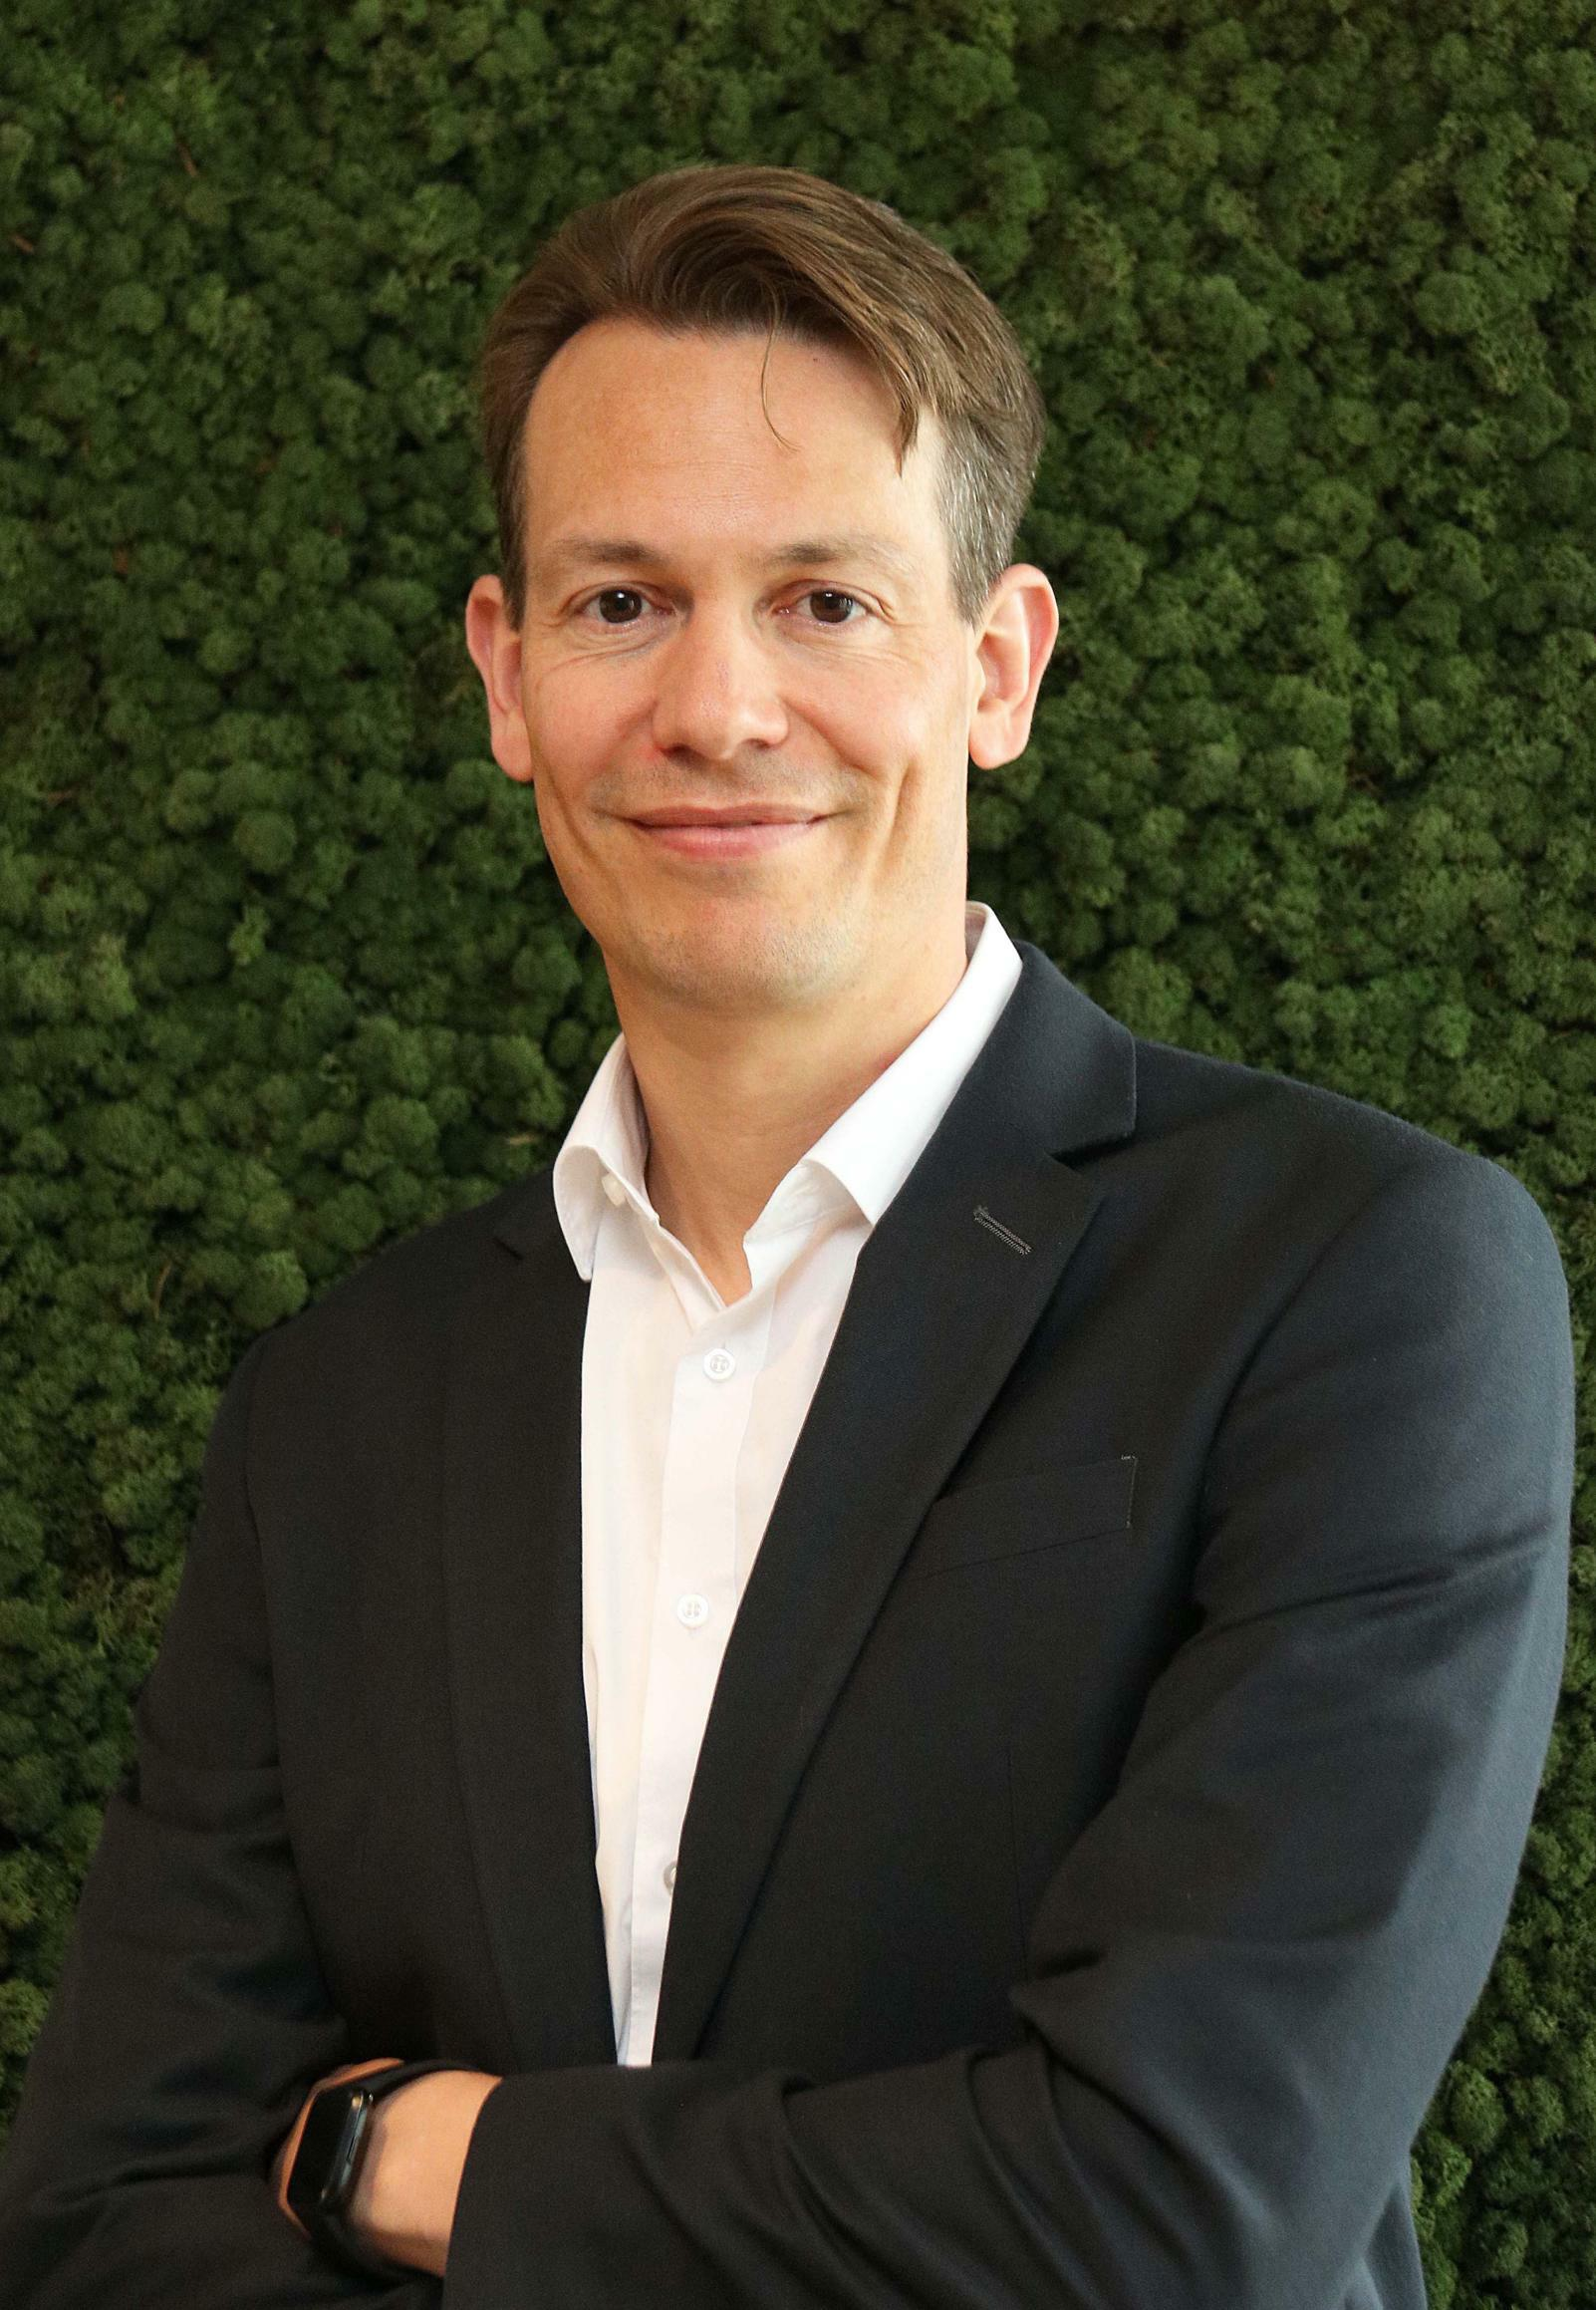 Sander Breugelmans, SVP, Regional Head Northern Europe, Prologis